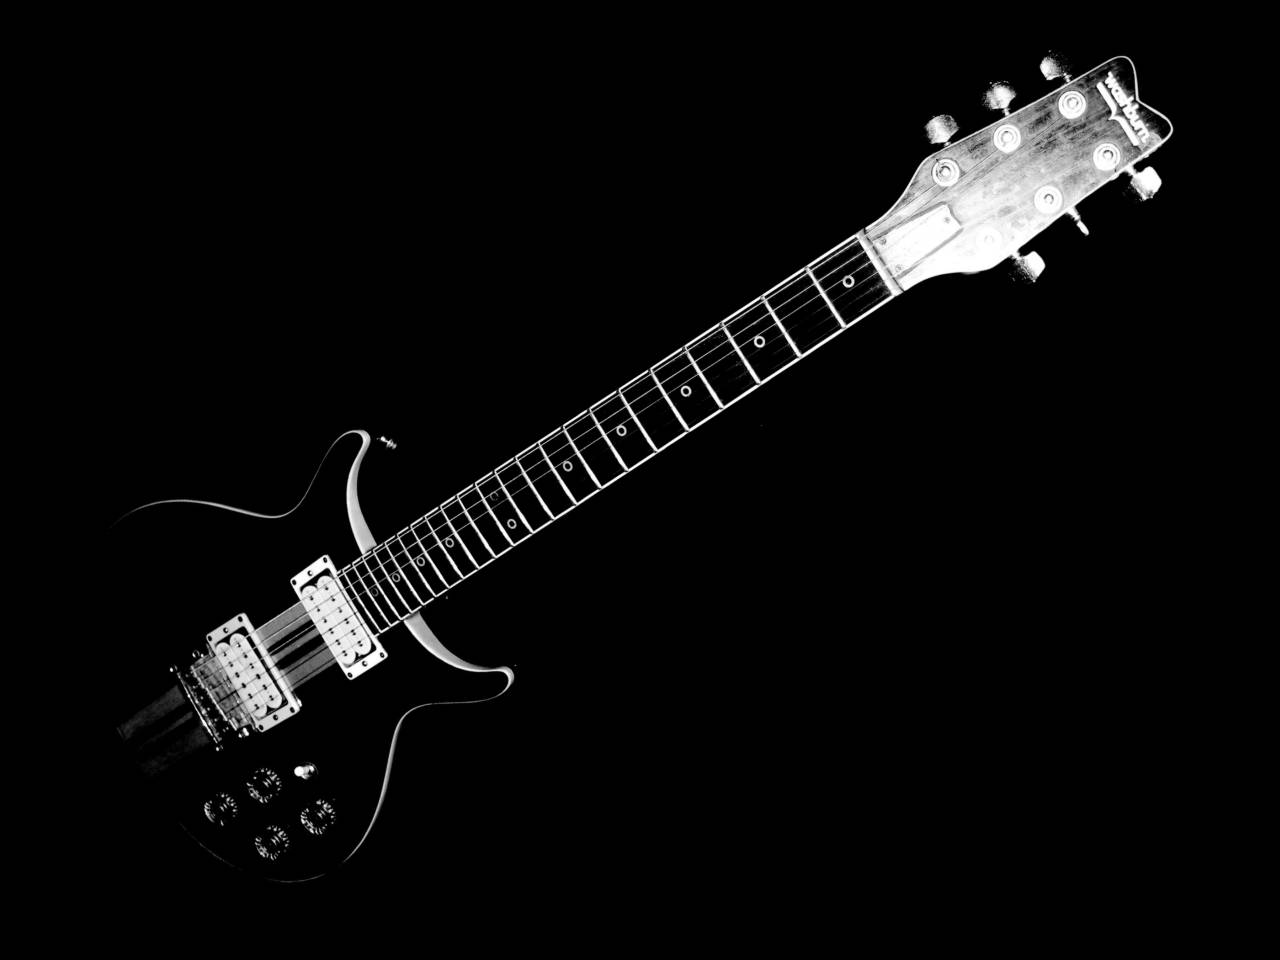 Black electric guitar hd wallpaper